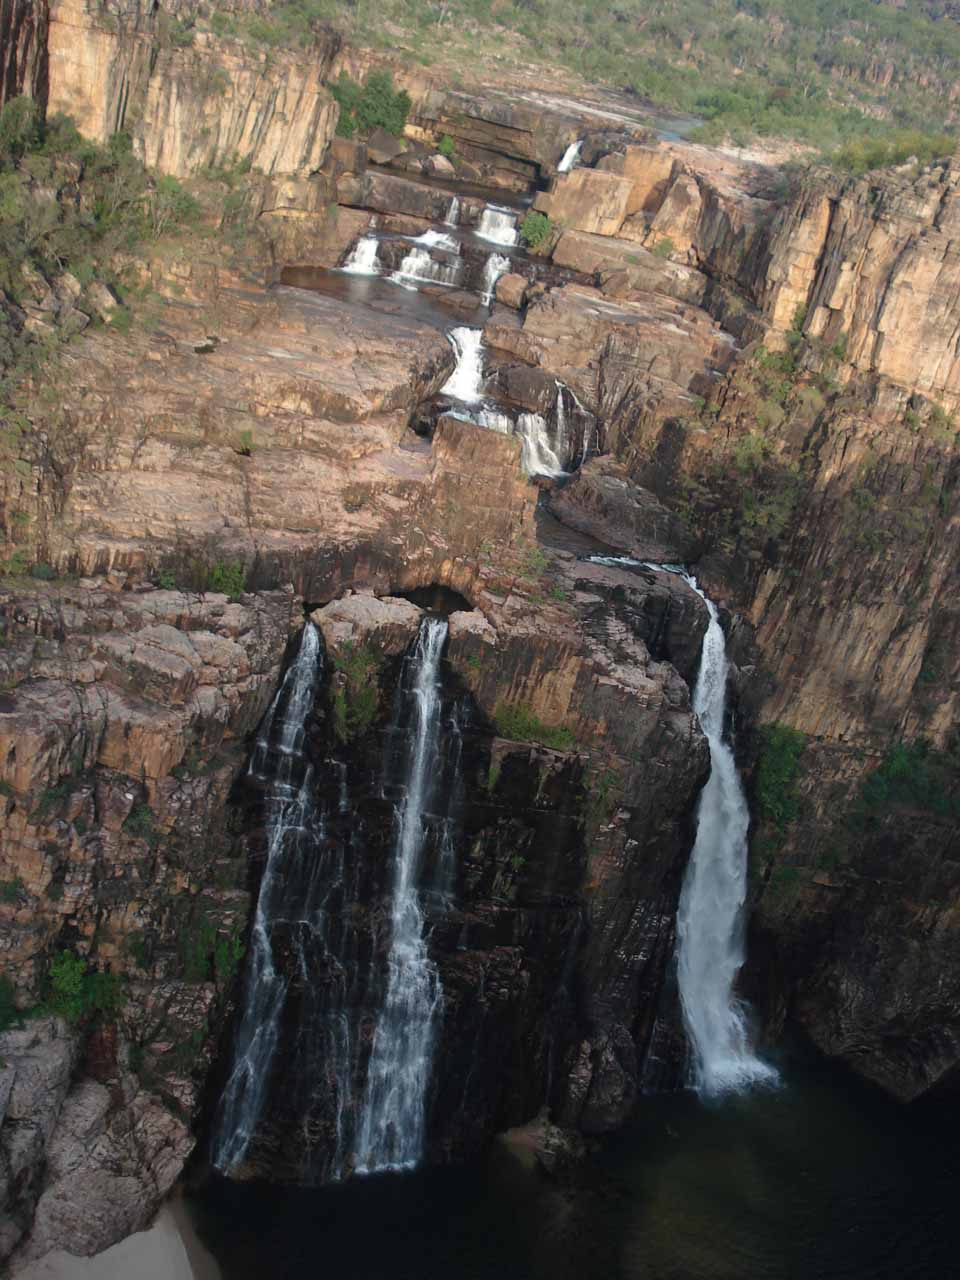 Our visit to Double Falls also included a flyover of the impressive Twin Falls